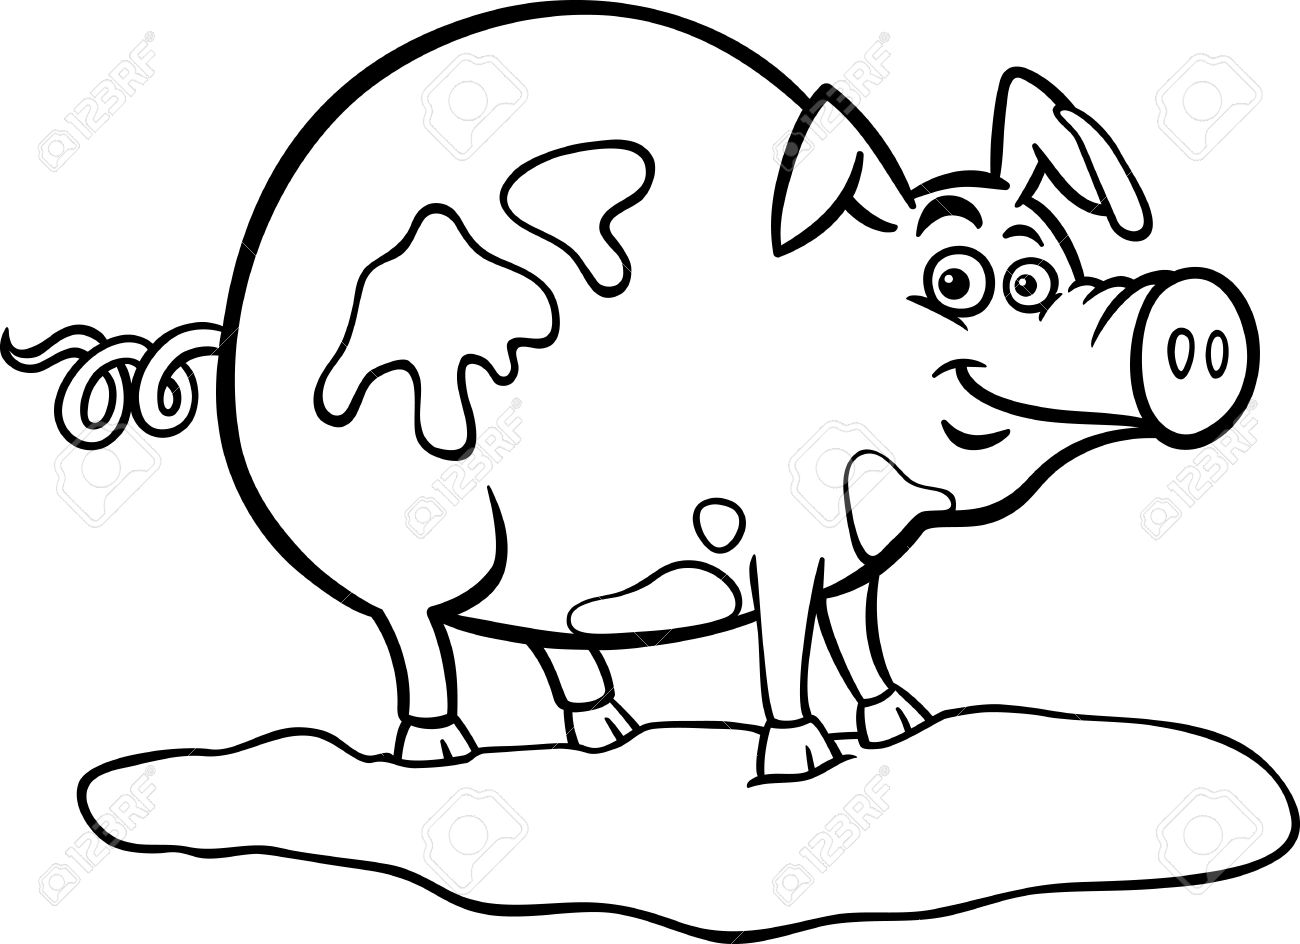 black and white cartoon illustration of funny pig farm animal in mud for coloring book stock